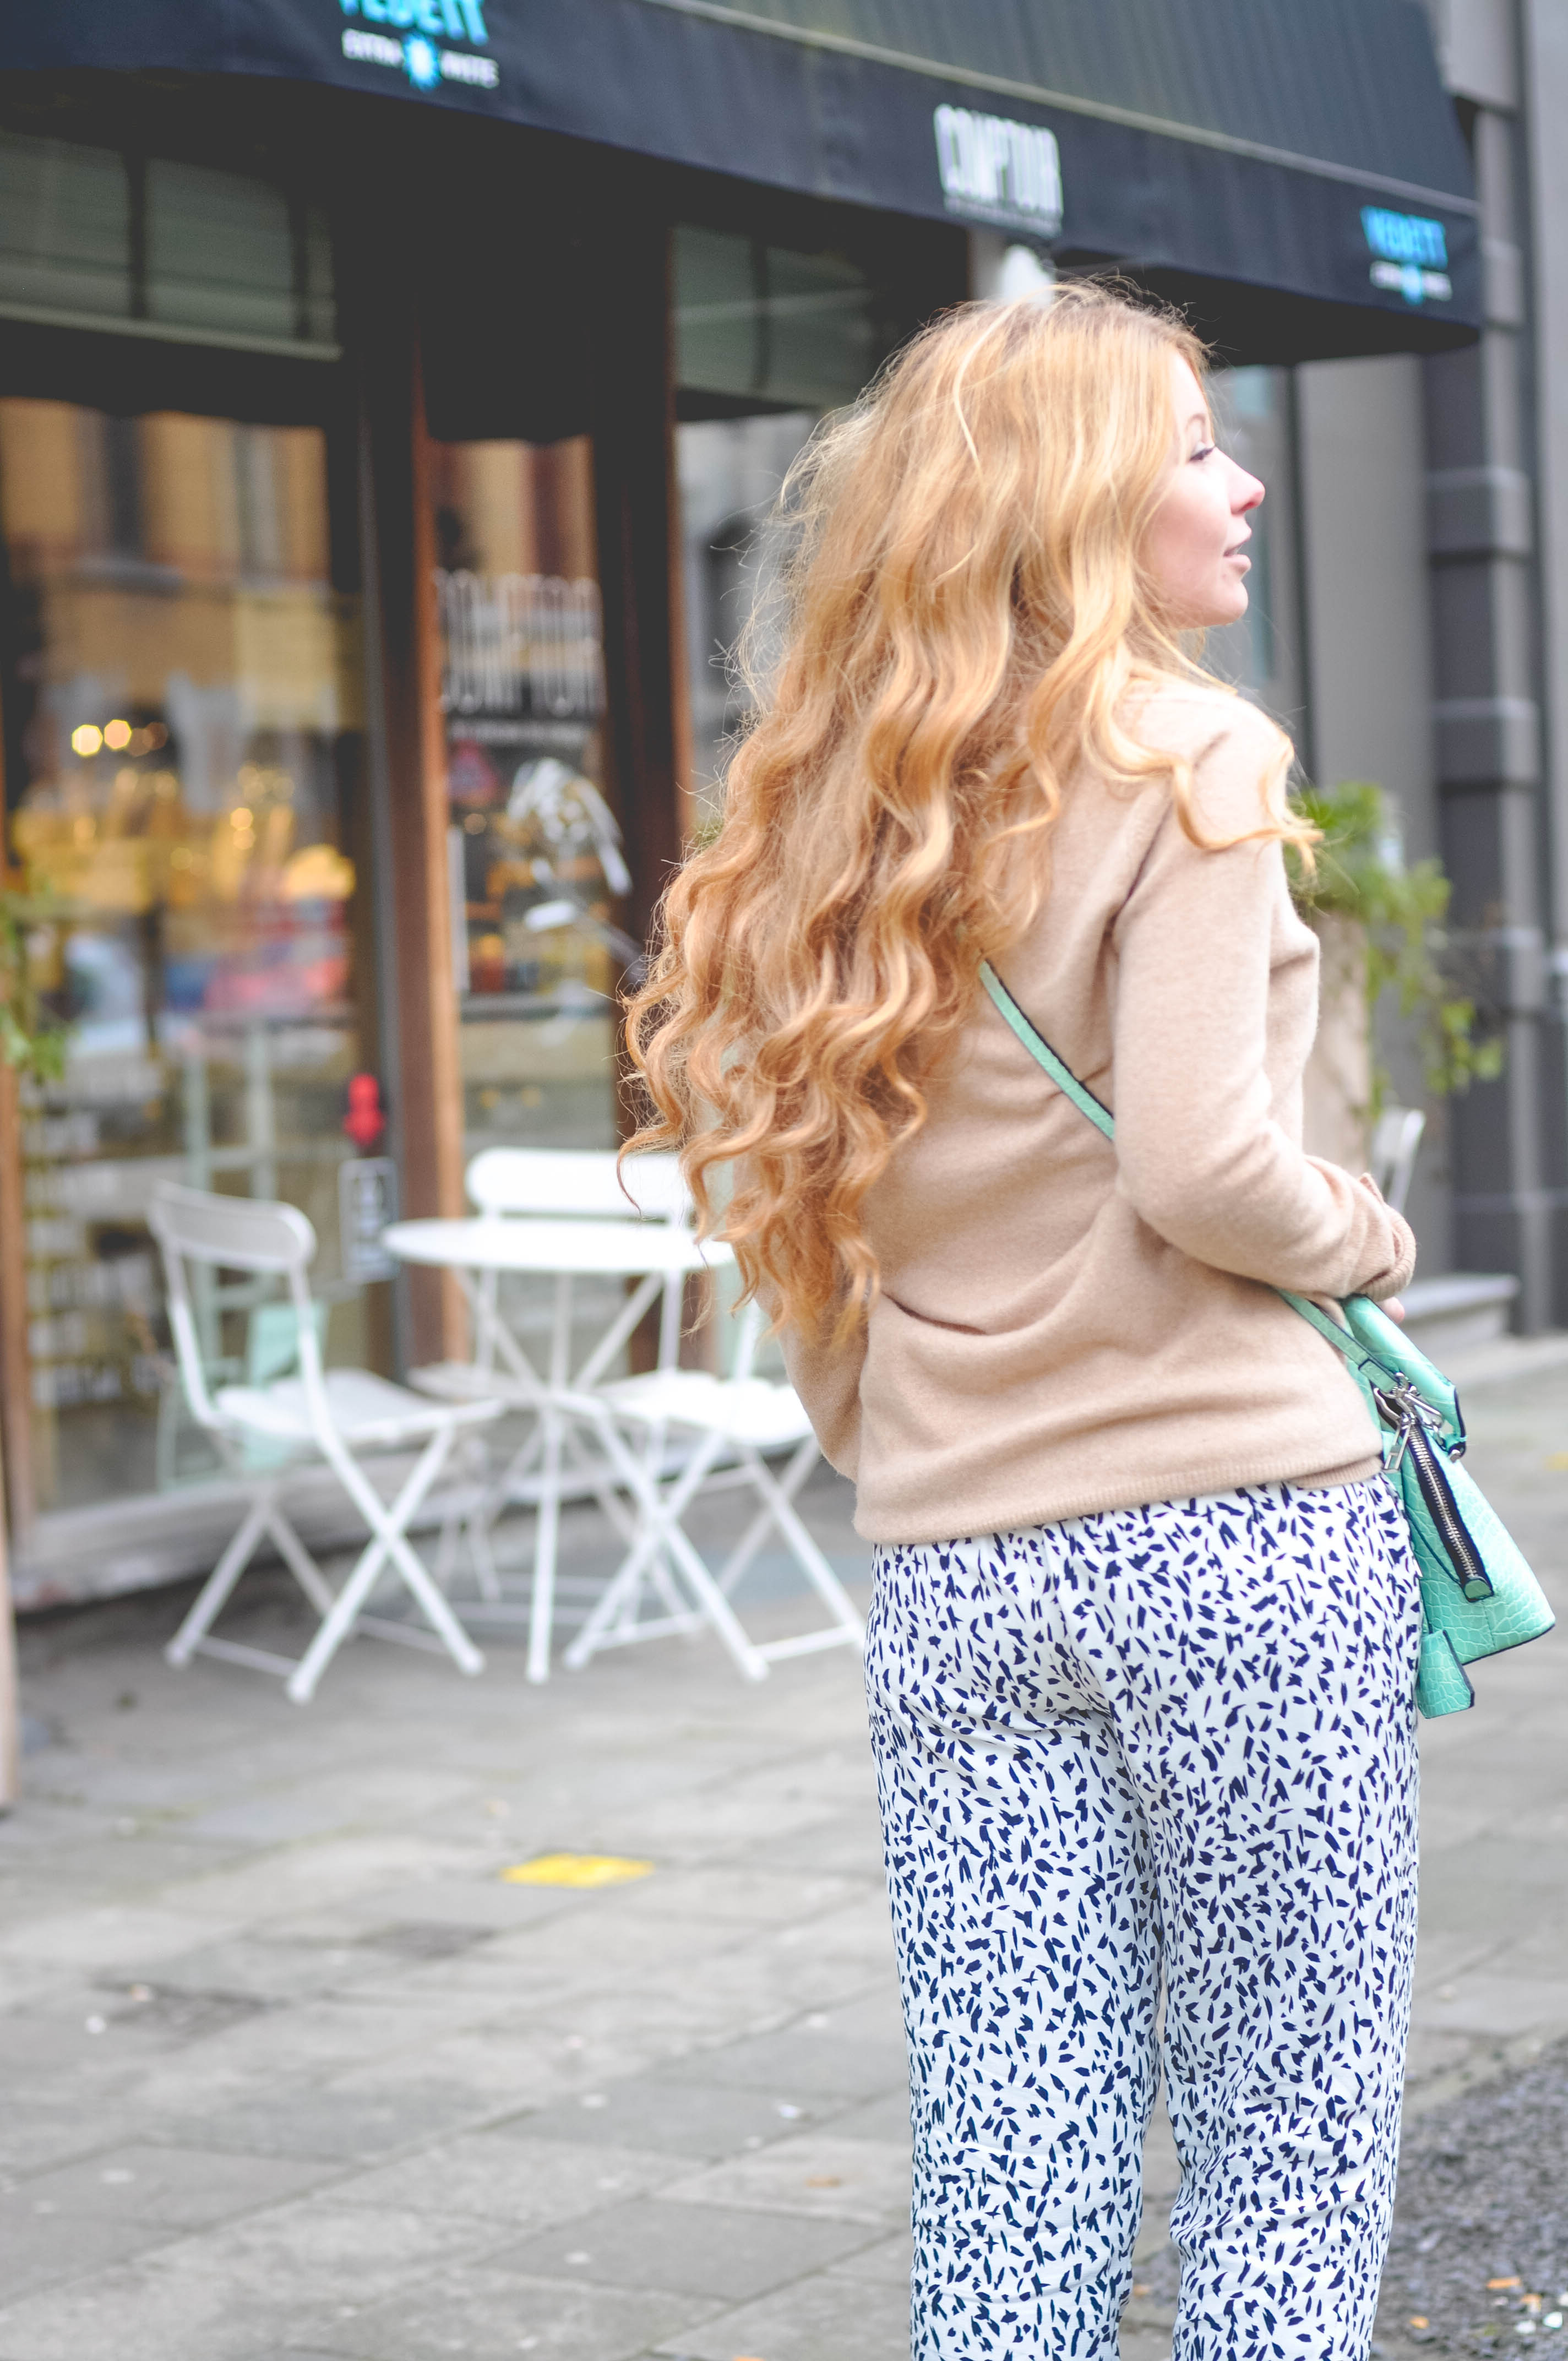 Dogs and Dresses camel coat print pants and cashmere sweater outfit-70